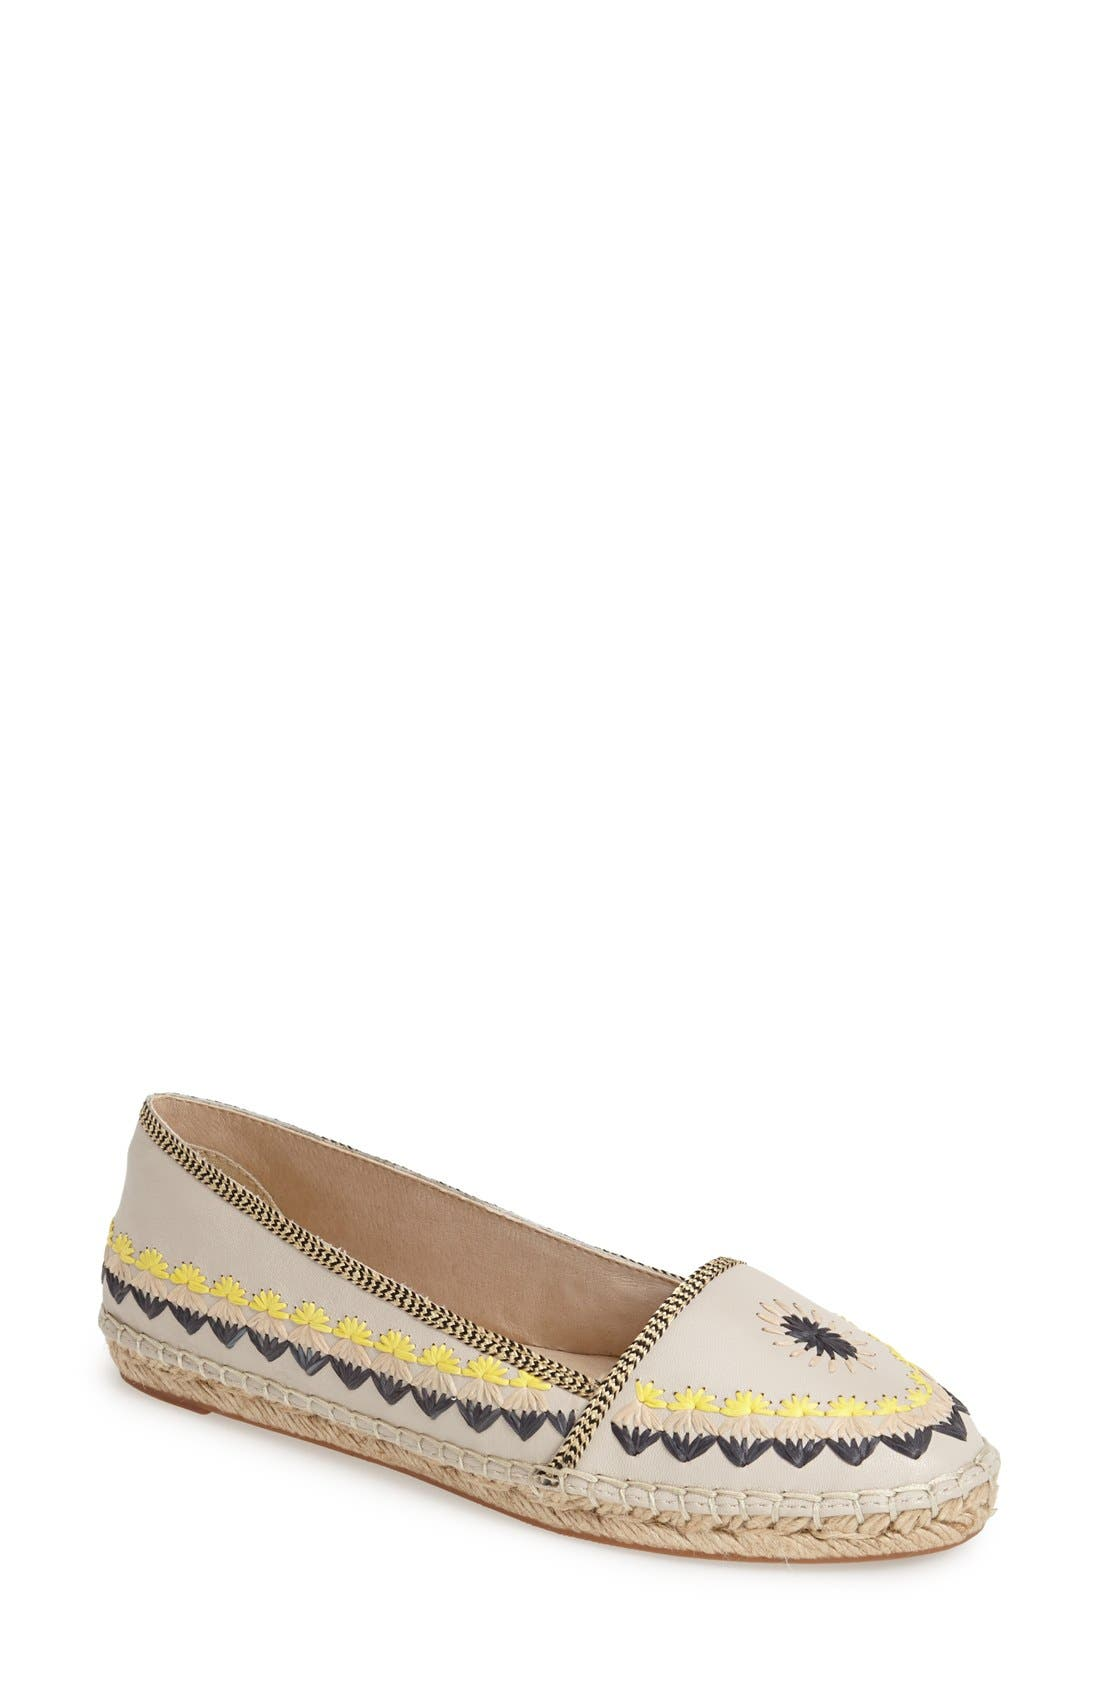 Alternate Image 1 Selected - House of Harlow 1960 'Kole' Espadrille